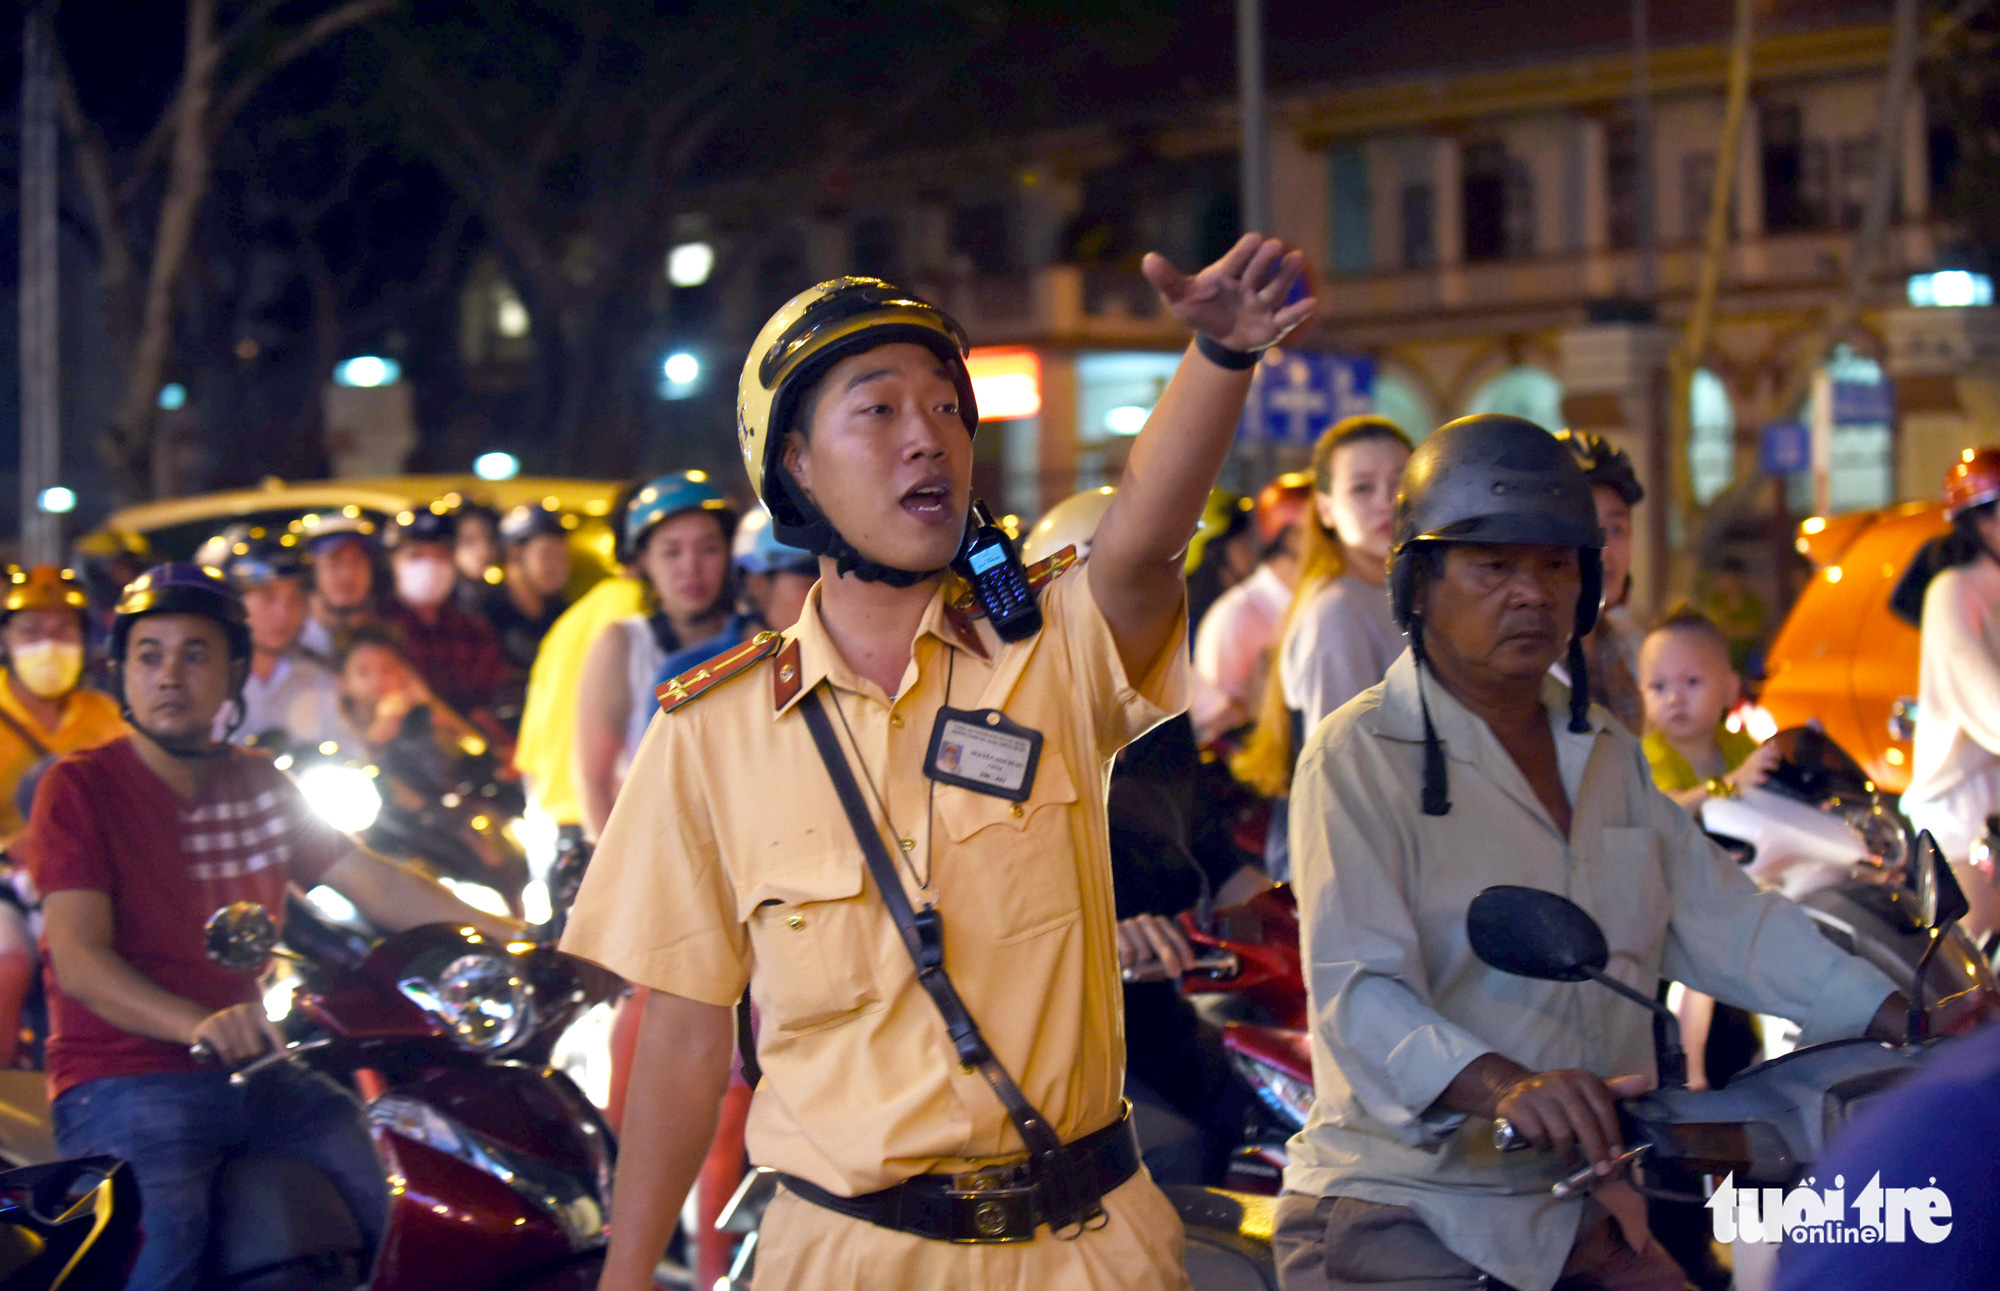 A traffic police officer regulates traffic in downtown Ho Chi Minh City on Christmas Eve, December 24, 2019.